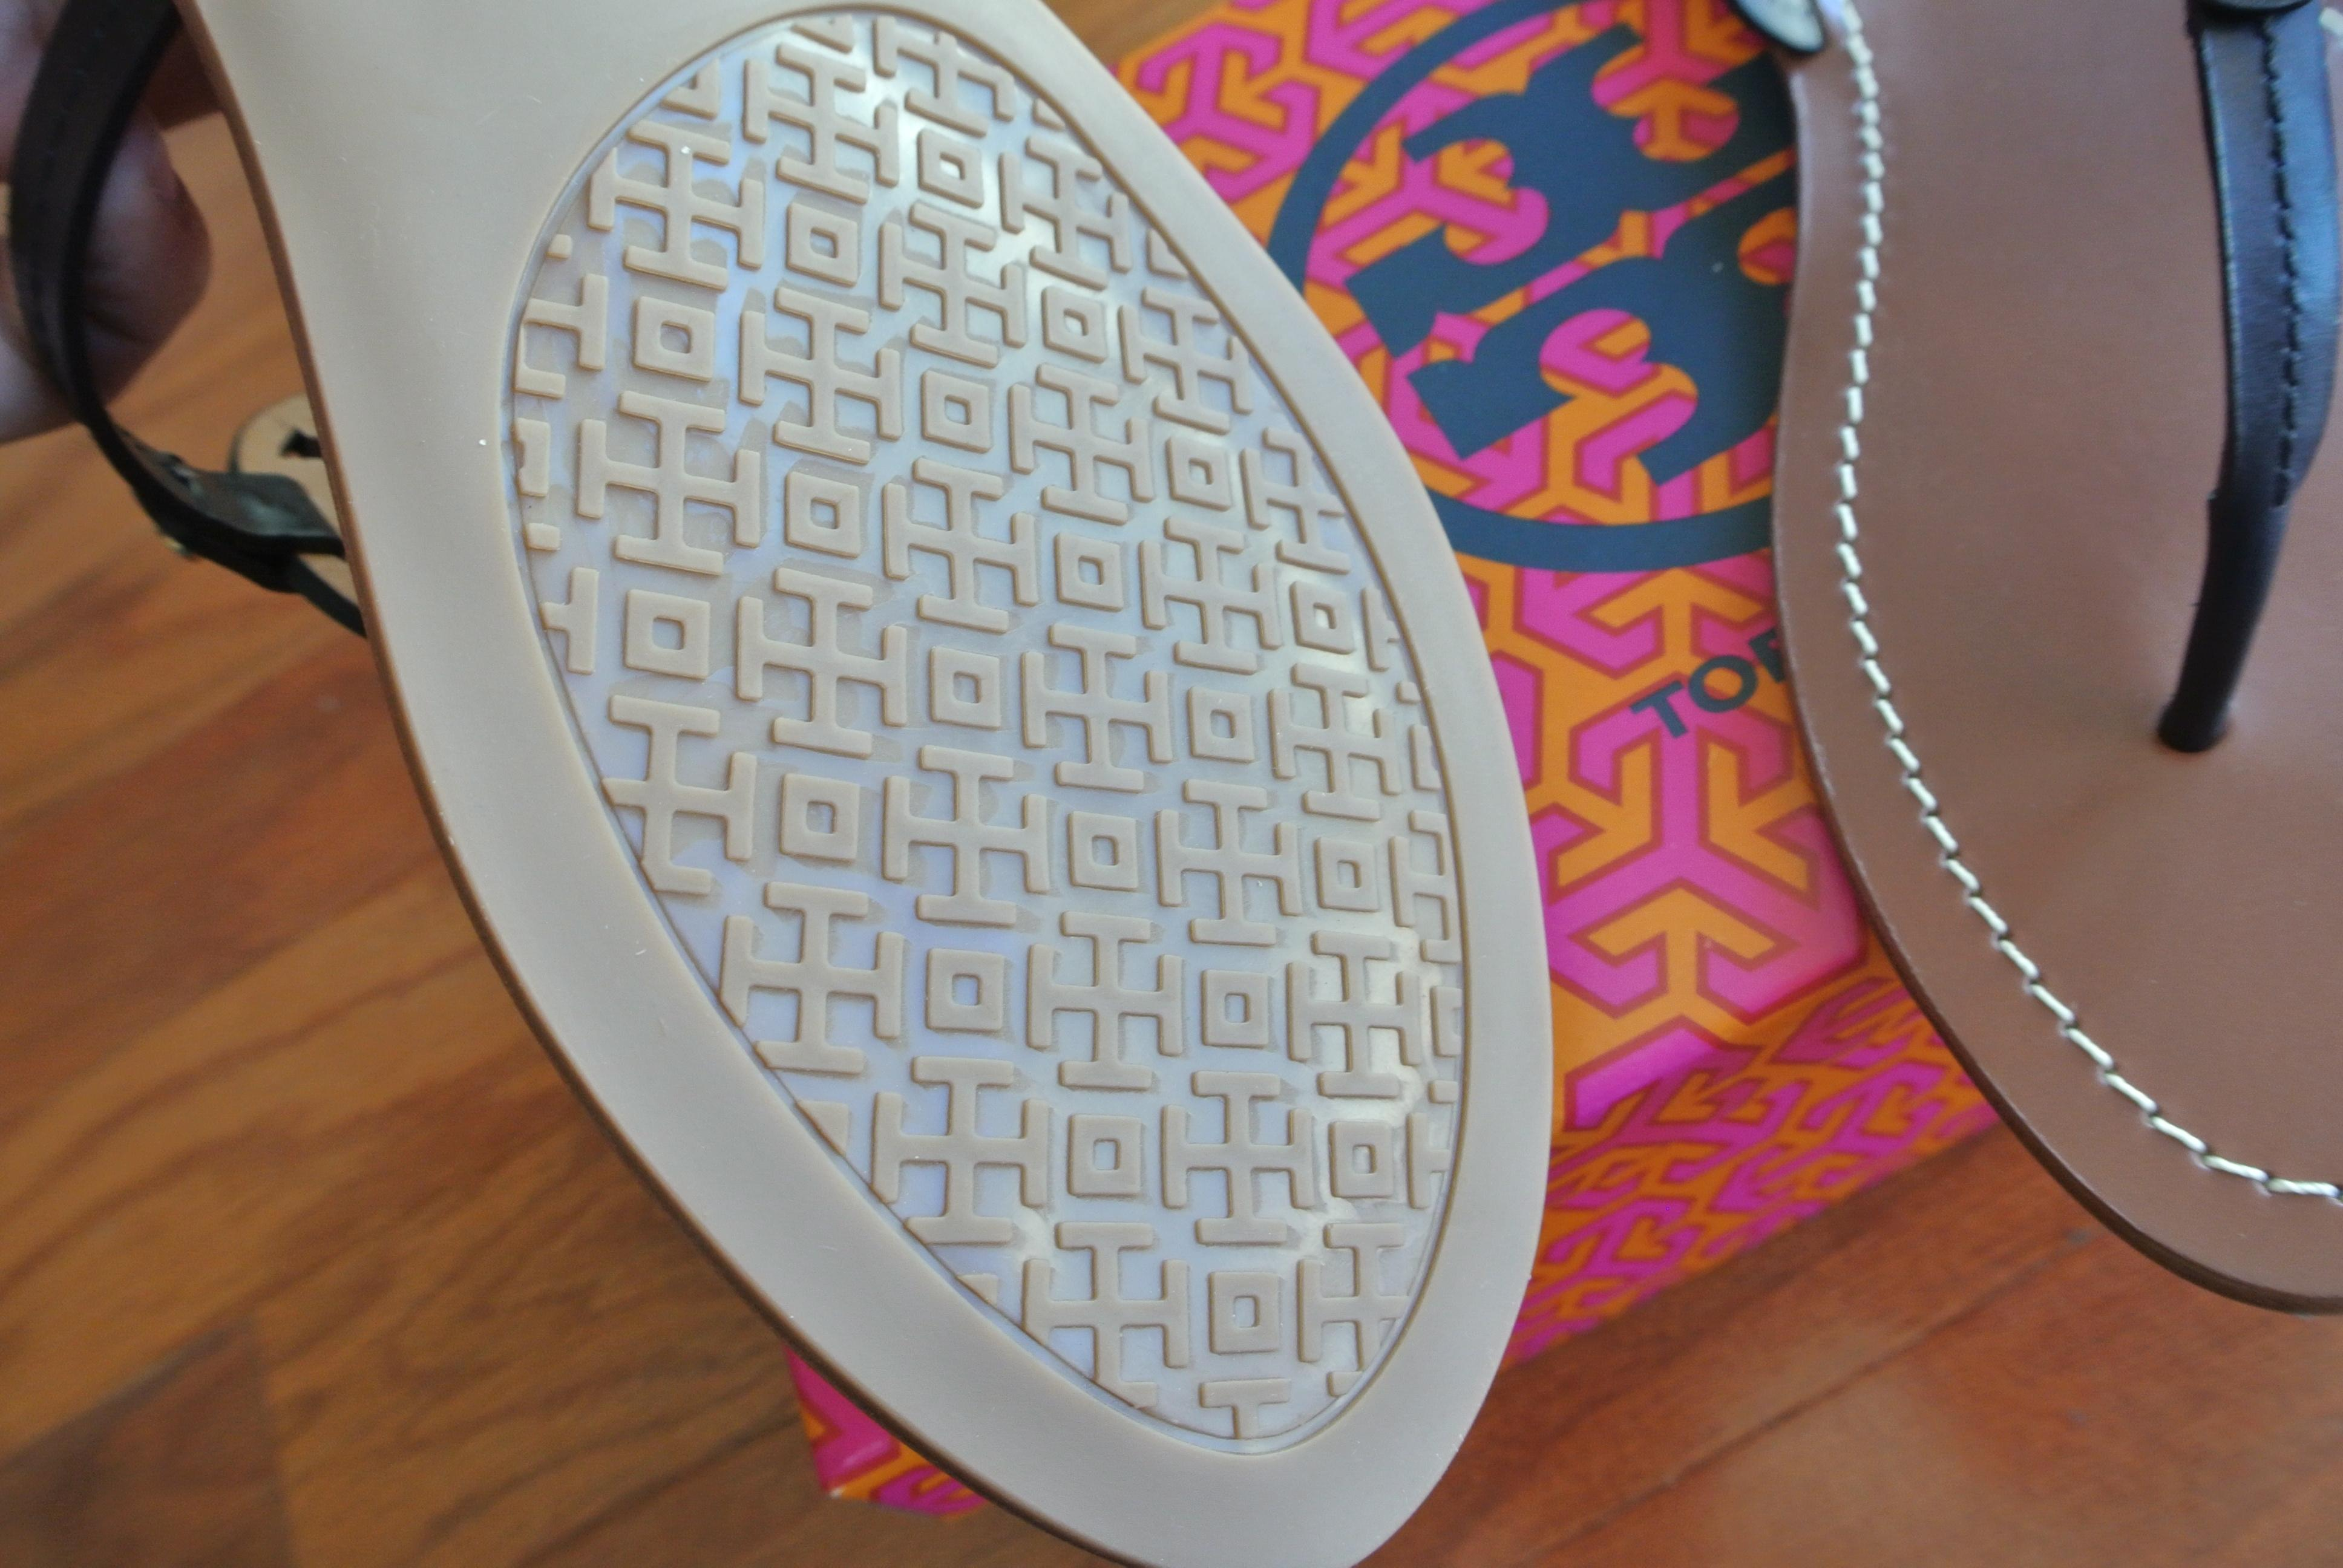 17934c9a1 ... Tory Burch Black End-of-summer-sale Mini Miller Sandals Size Size Size  ...